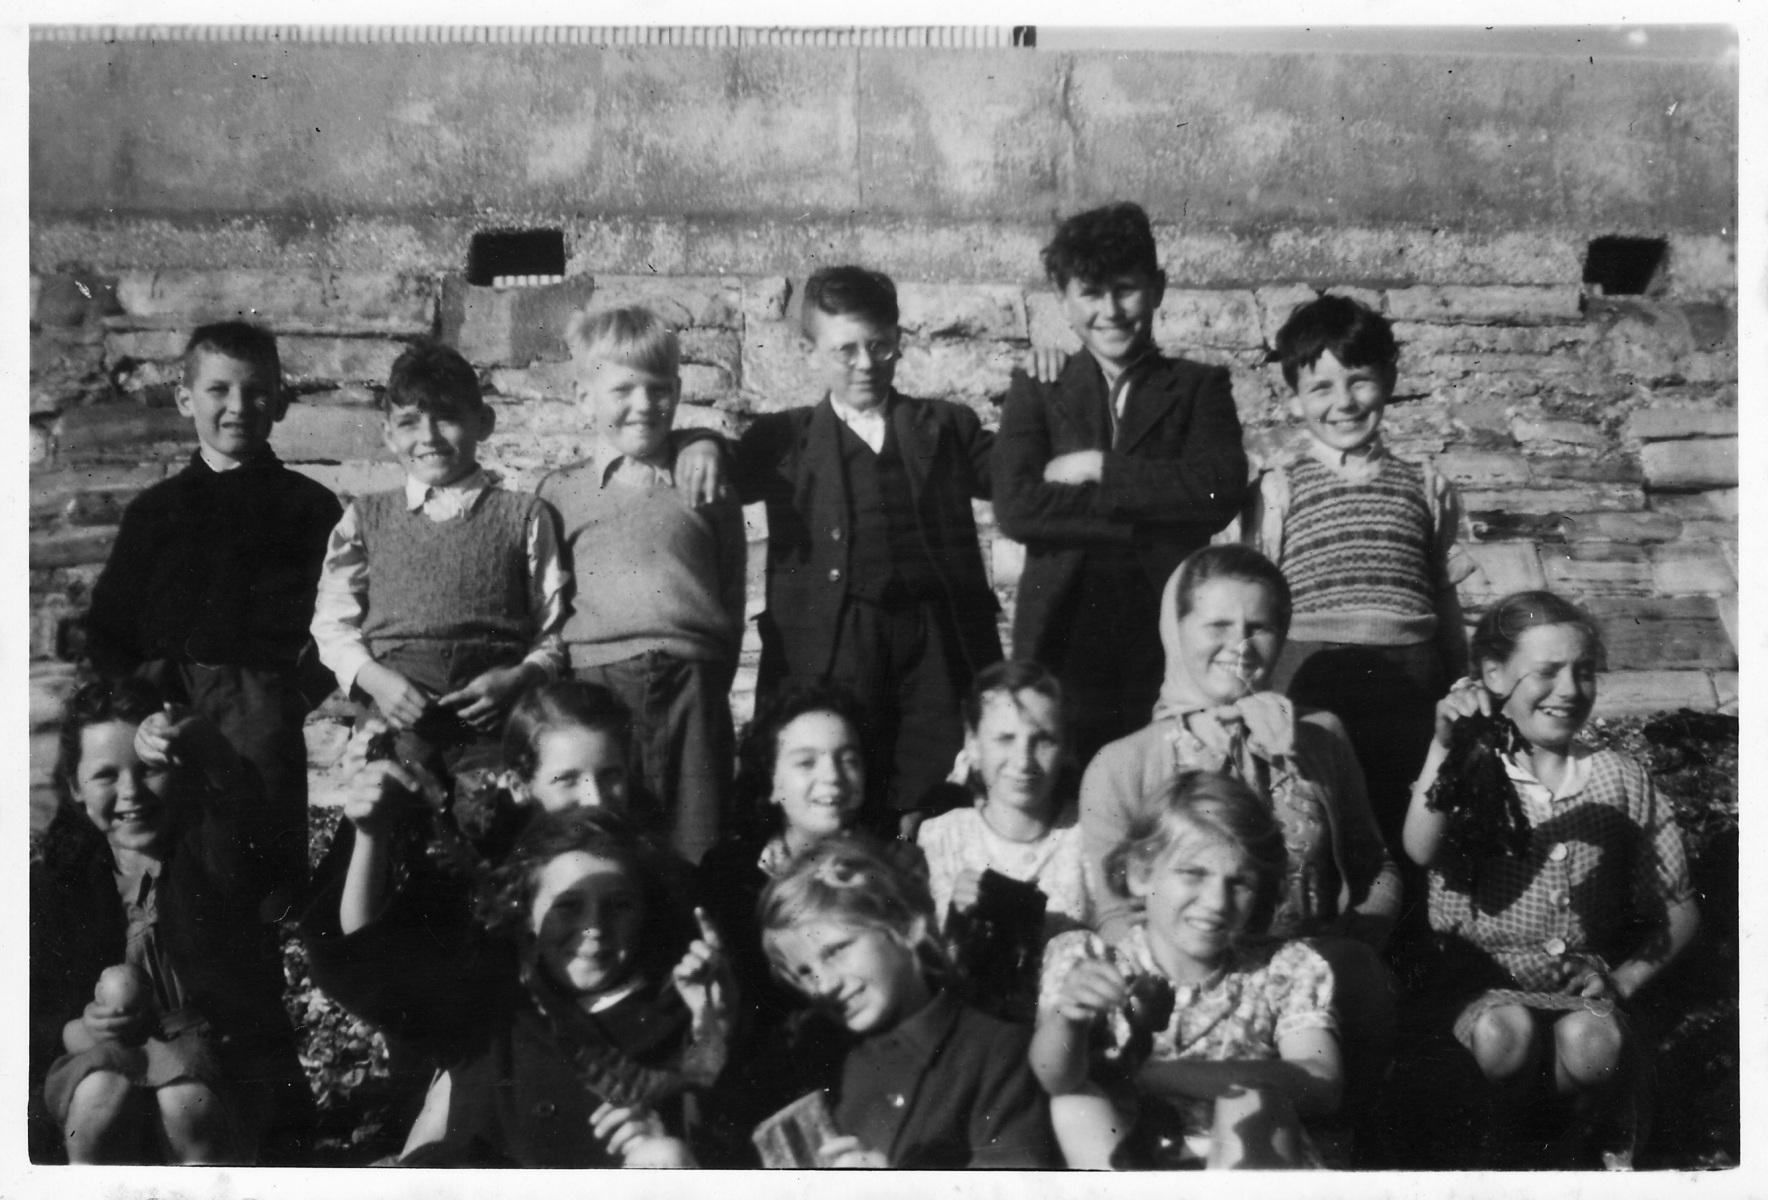 Back row: Lawrence Harrison, Derek Gardner, ?, ?, Fred Hazell and Terry Castle.Middle row: Jenny Reed(?), ? Chilton, Ena Davis, Brenda Rogers, Margaret Bolton and Ruby Hazell.Front row: ?, Dorothy (?) Chilton and Joy Chilton.